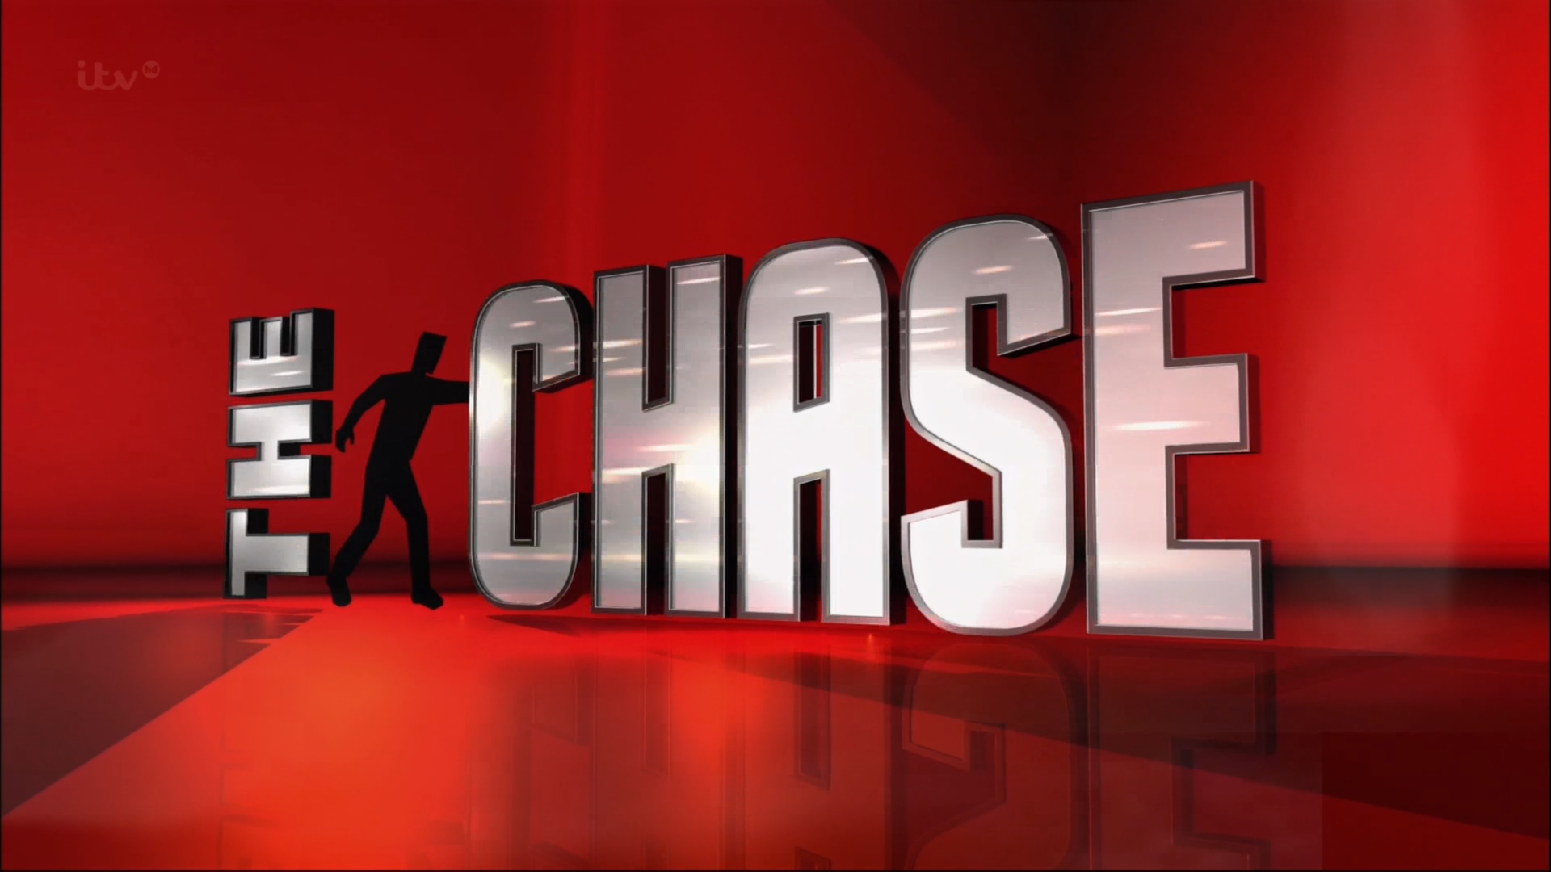 Who is your favourite chaser of the chase (TV game Show)?